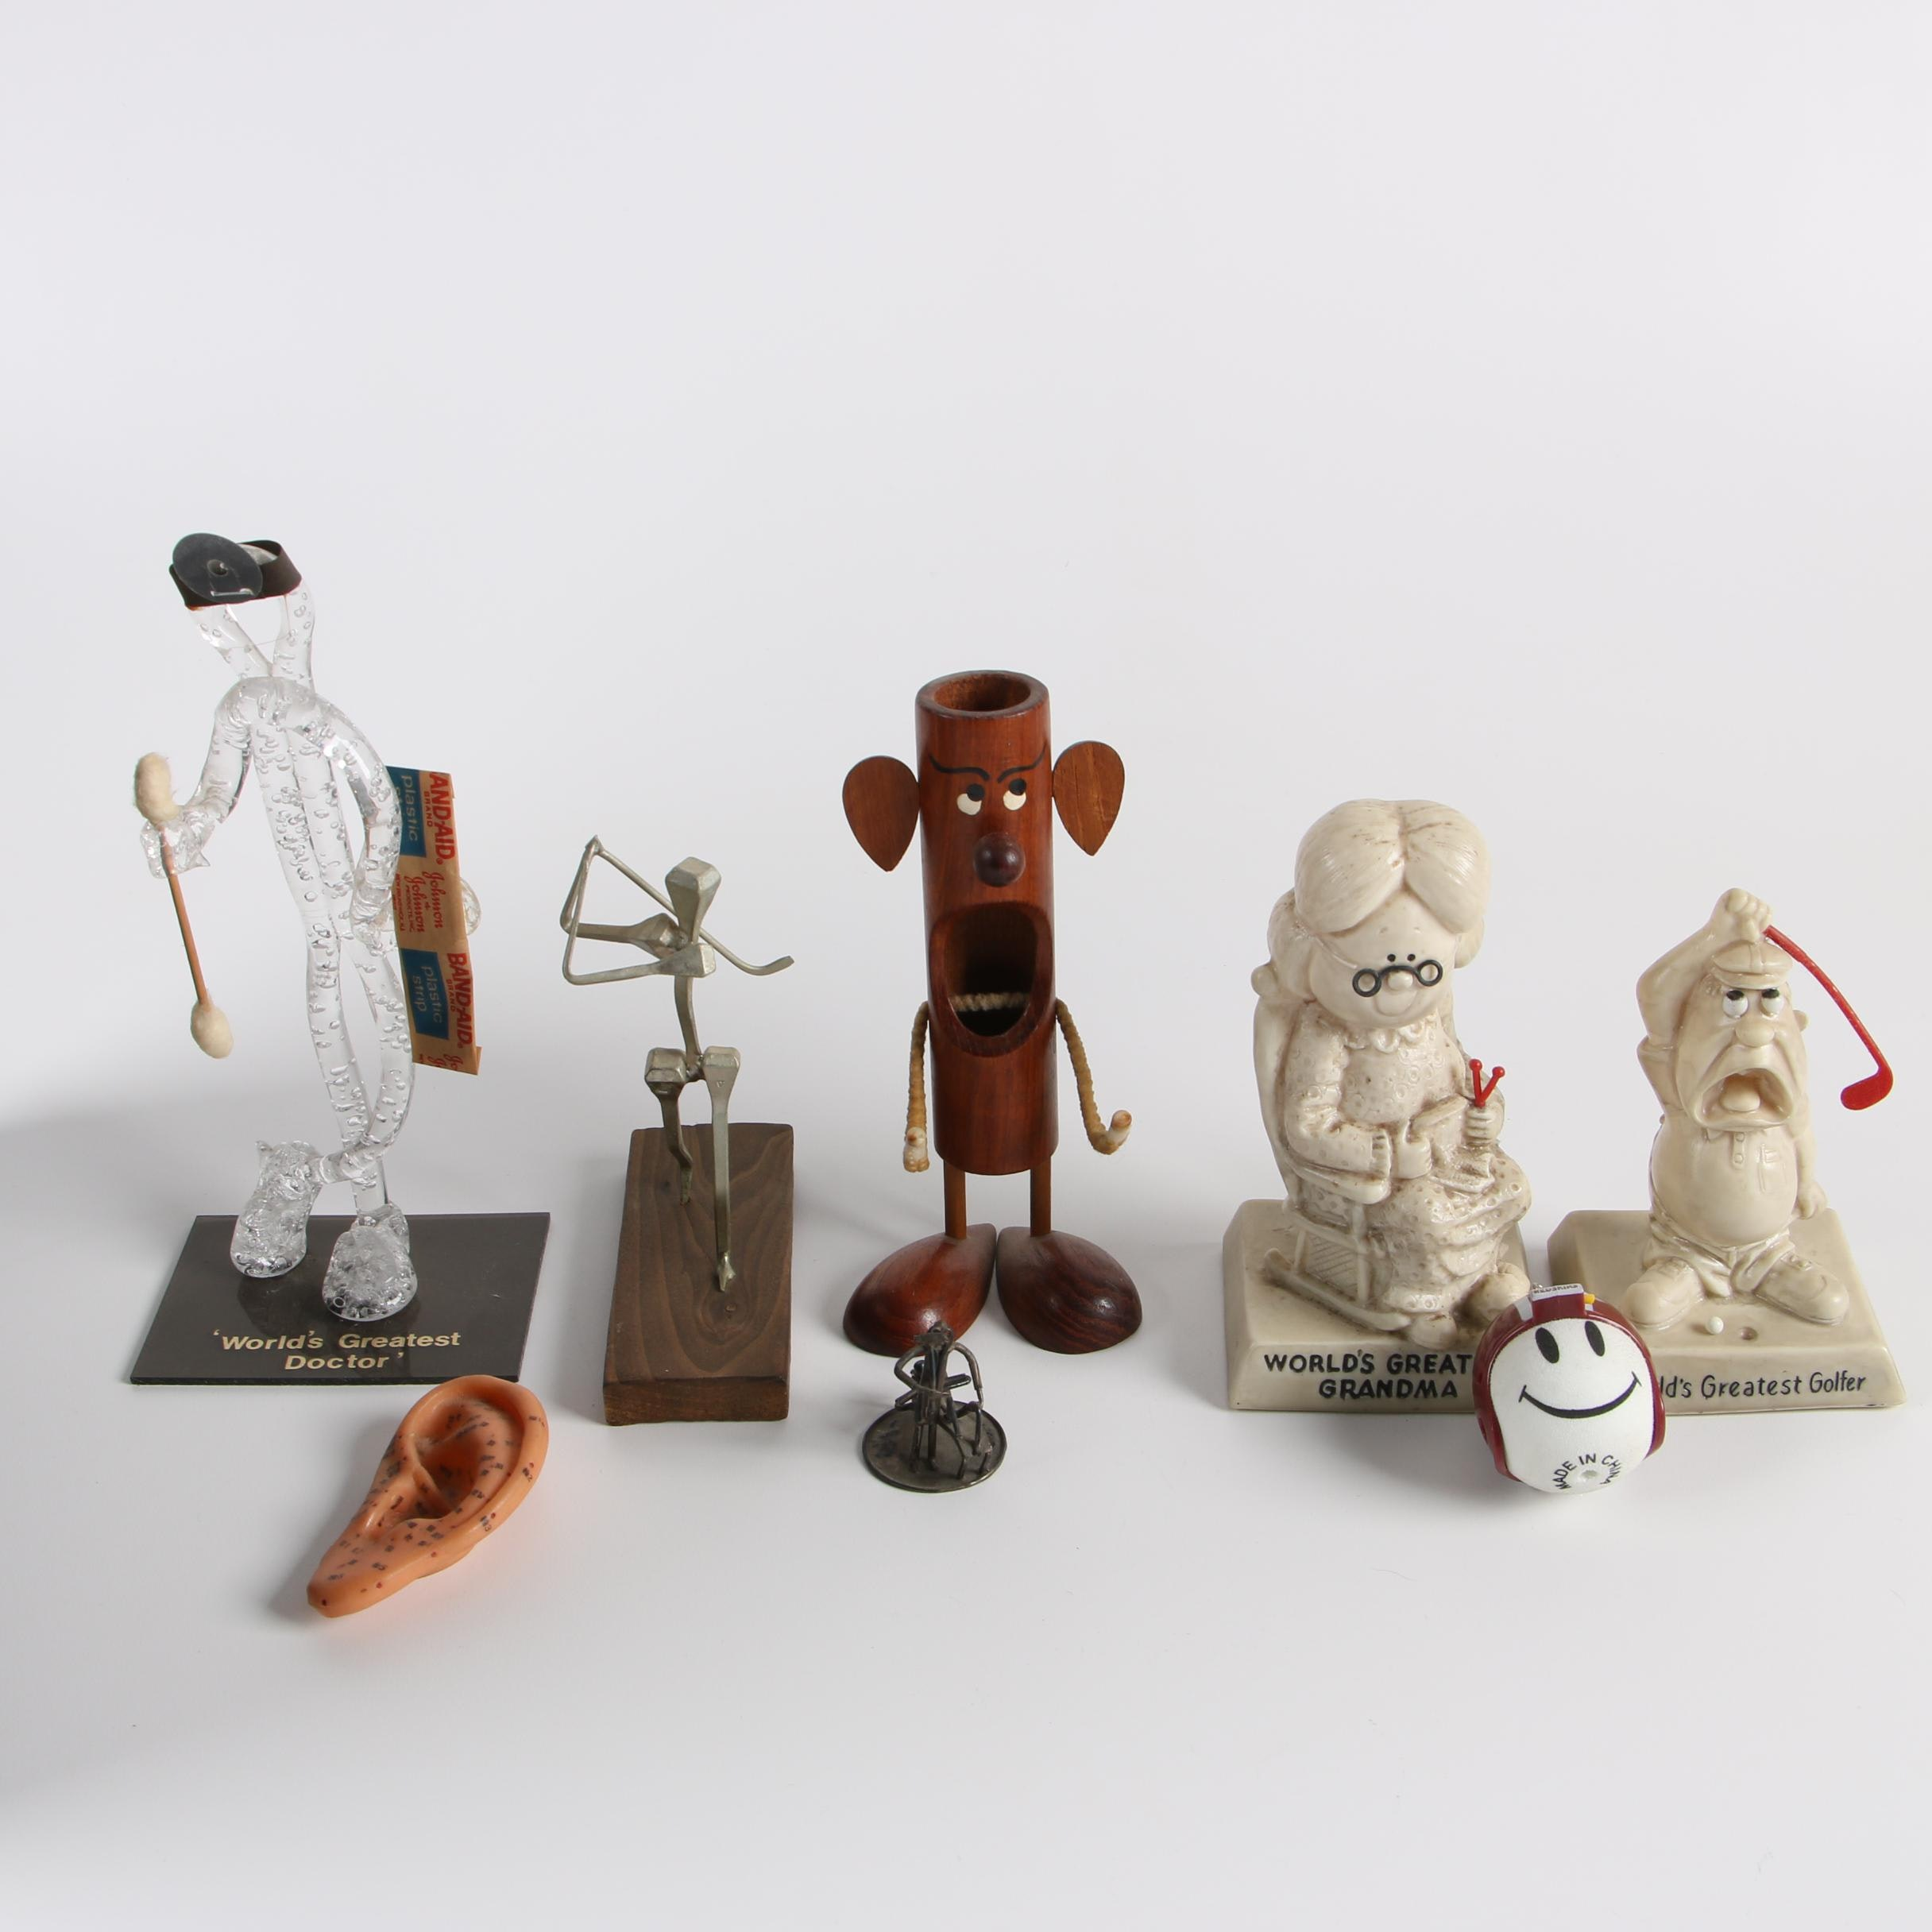 Israeli Sterling Sculpture with R & W Berries Figurines and More